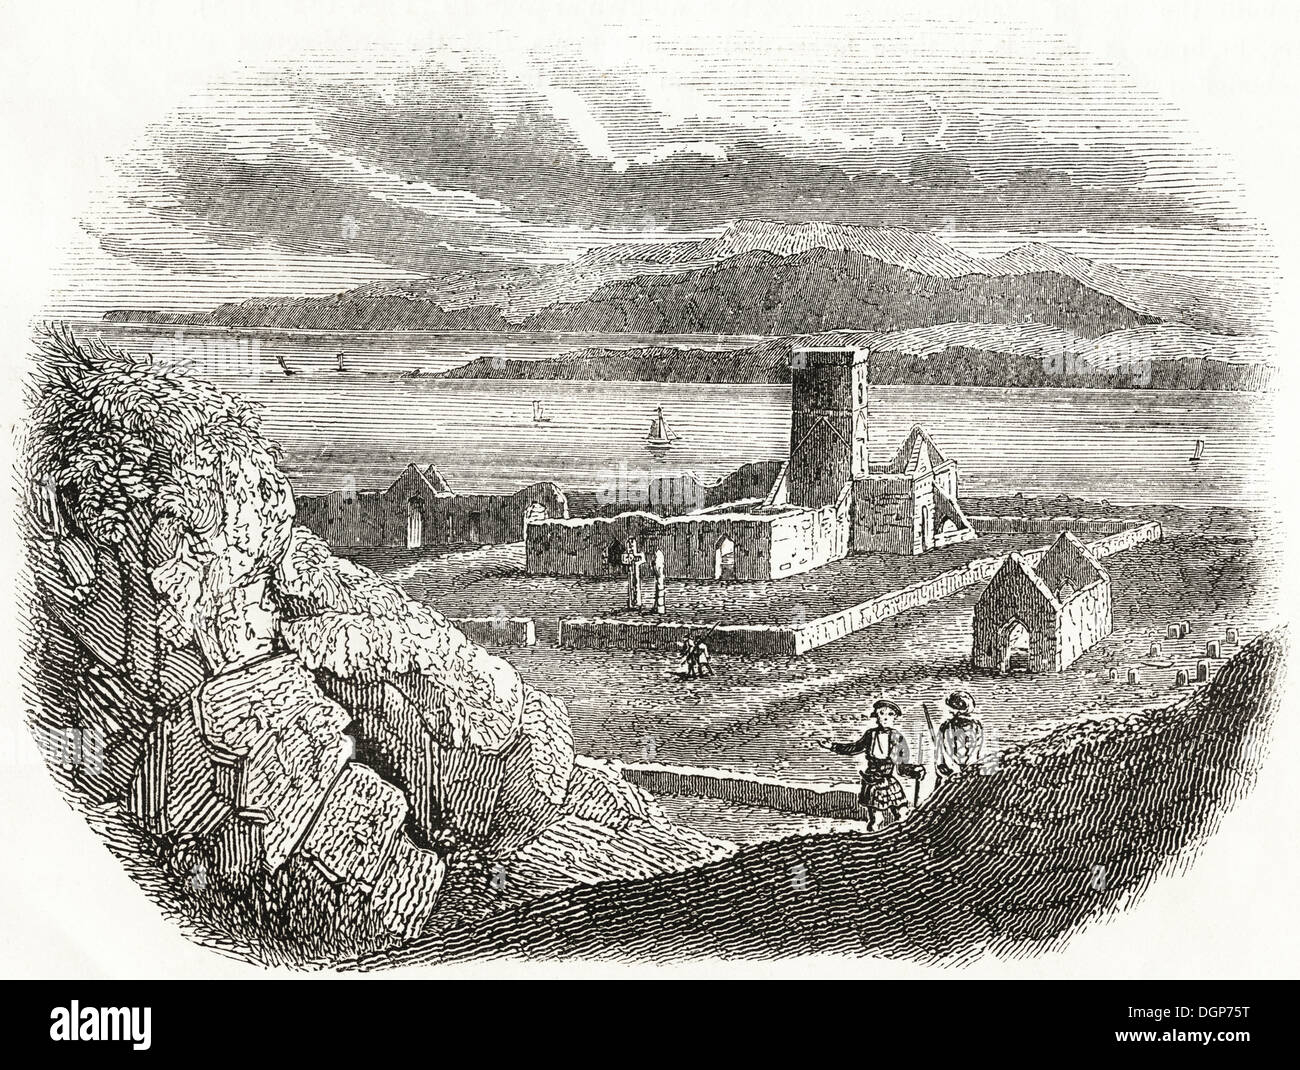 Anglo Saxon Britain. Ruins of Monastery on the Isle of Iona founded by St Columba in 563. Victorian woodcut circa 1845. - Stock Image